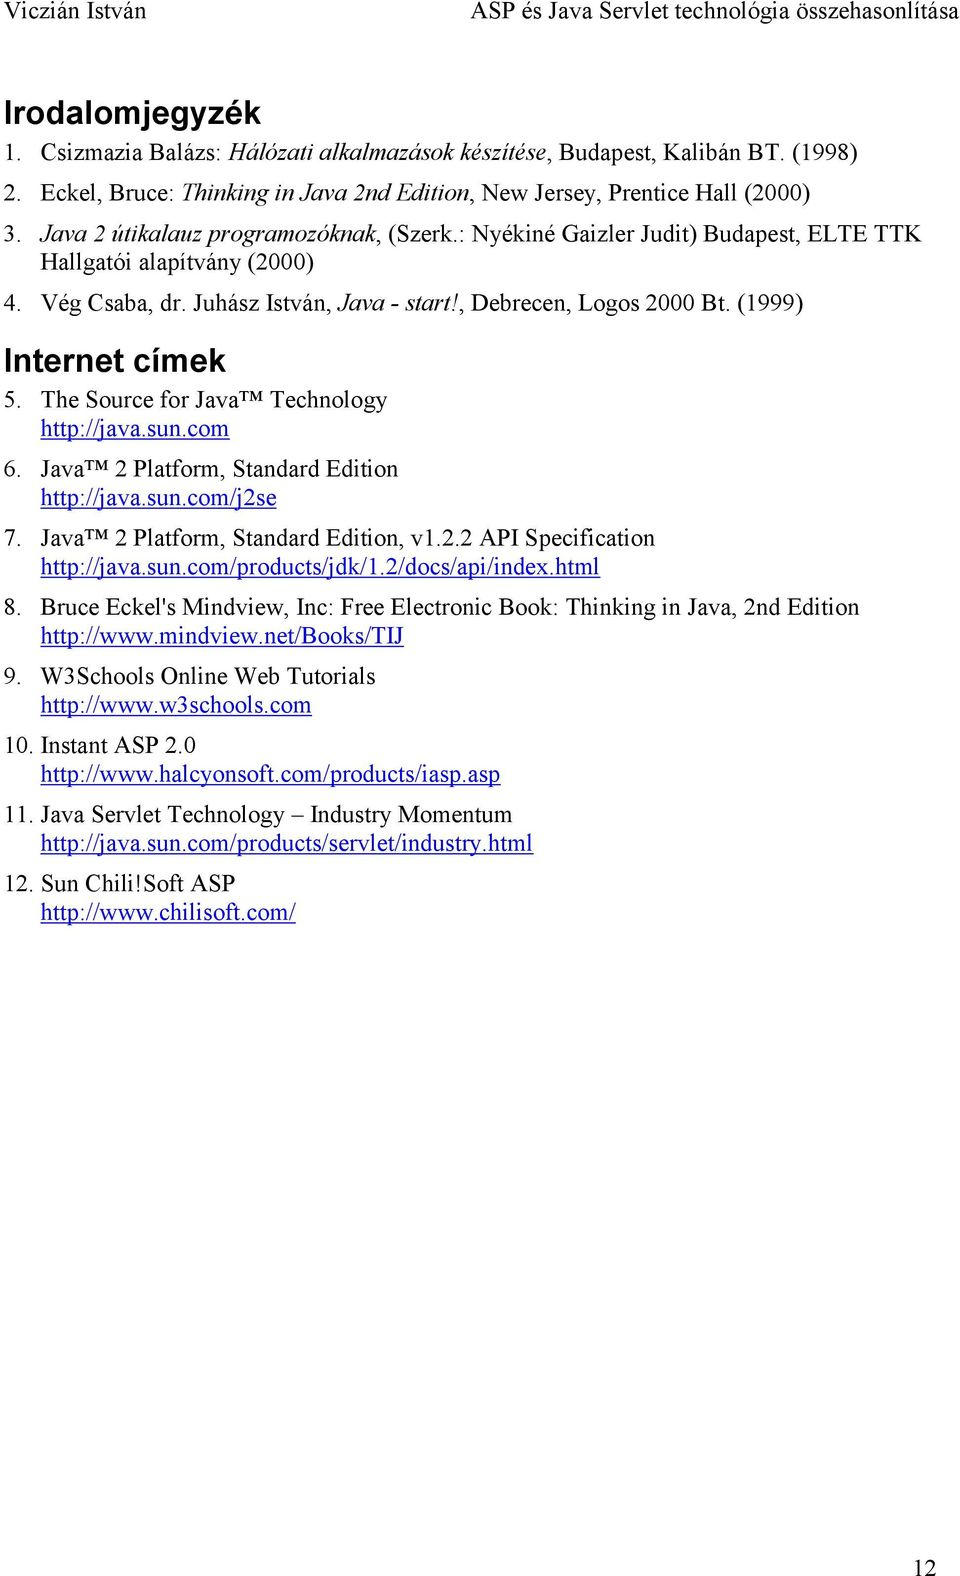 (1999) Internet címek 5. The Source for Java Technology http://java.sun.com 6. Java 2 Platform, Standard Edition http://java.sun.com/j2se 7. Java 2 Platform, Standard Edition, v1.2.2 API Specification http://java.